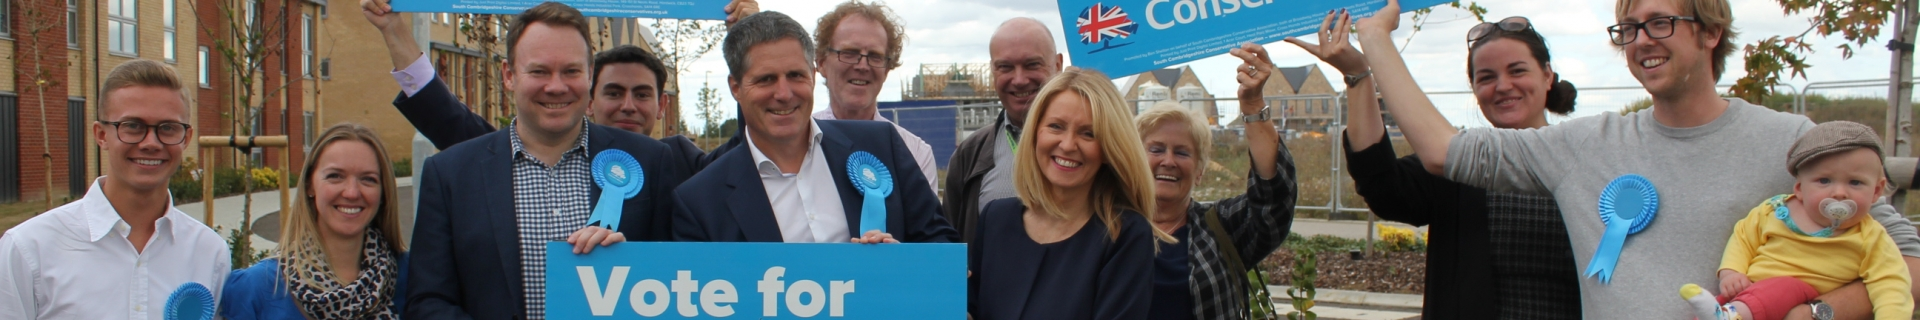 Banner image for South Cambridgeshire Conservatives